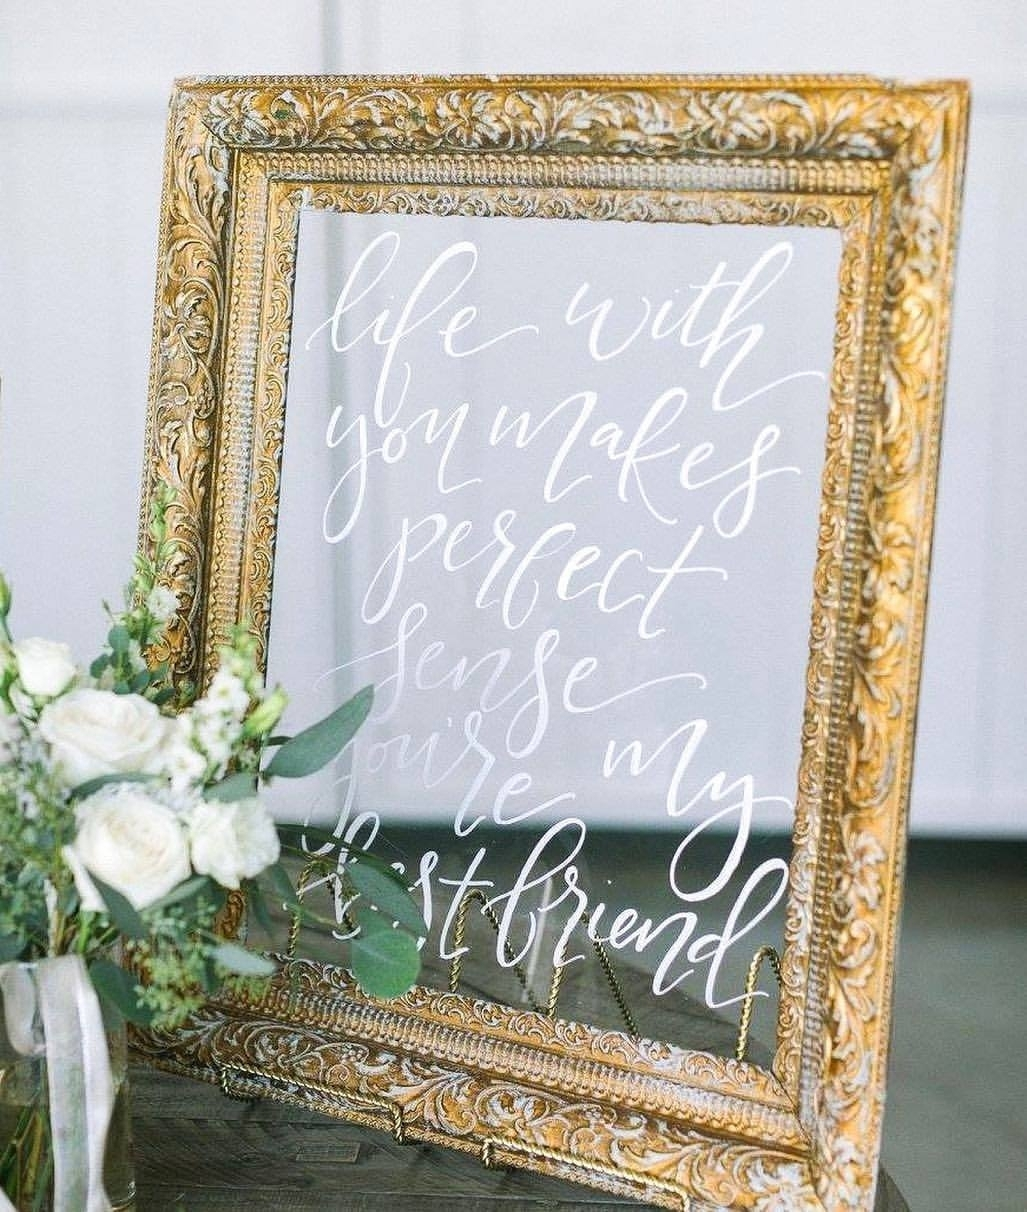 Plexiglass in a Vintage Frame (photo: Ellen Ashton)